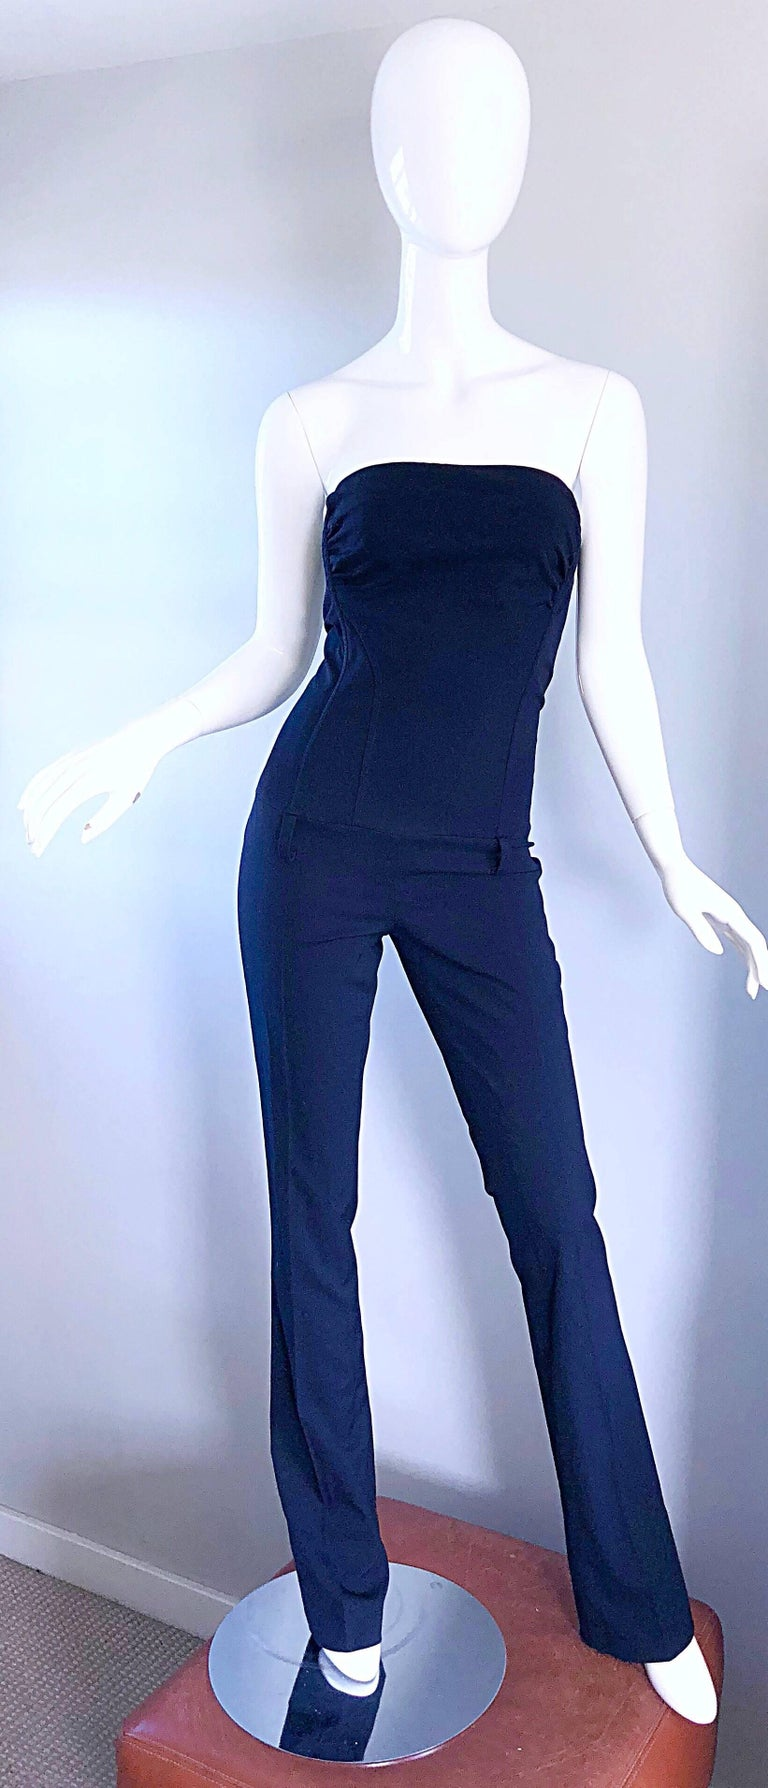 Fantastic early 2000s ELISABETTA FRANCHI Per CELYN B. Navy blue strapless jumpsuit! Features a soft virgin wool and rayon blend that allows for just the right amount of stretch and comfort. Boned bodice keeps everything in place. Pant legs are